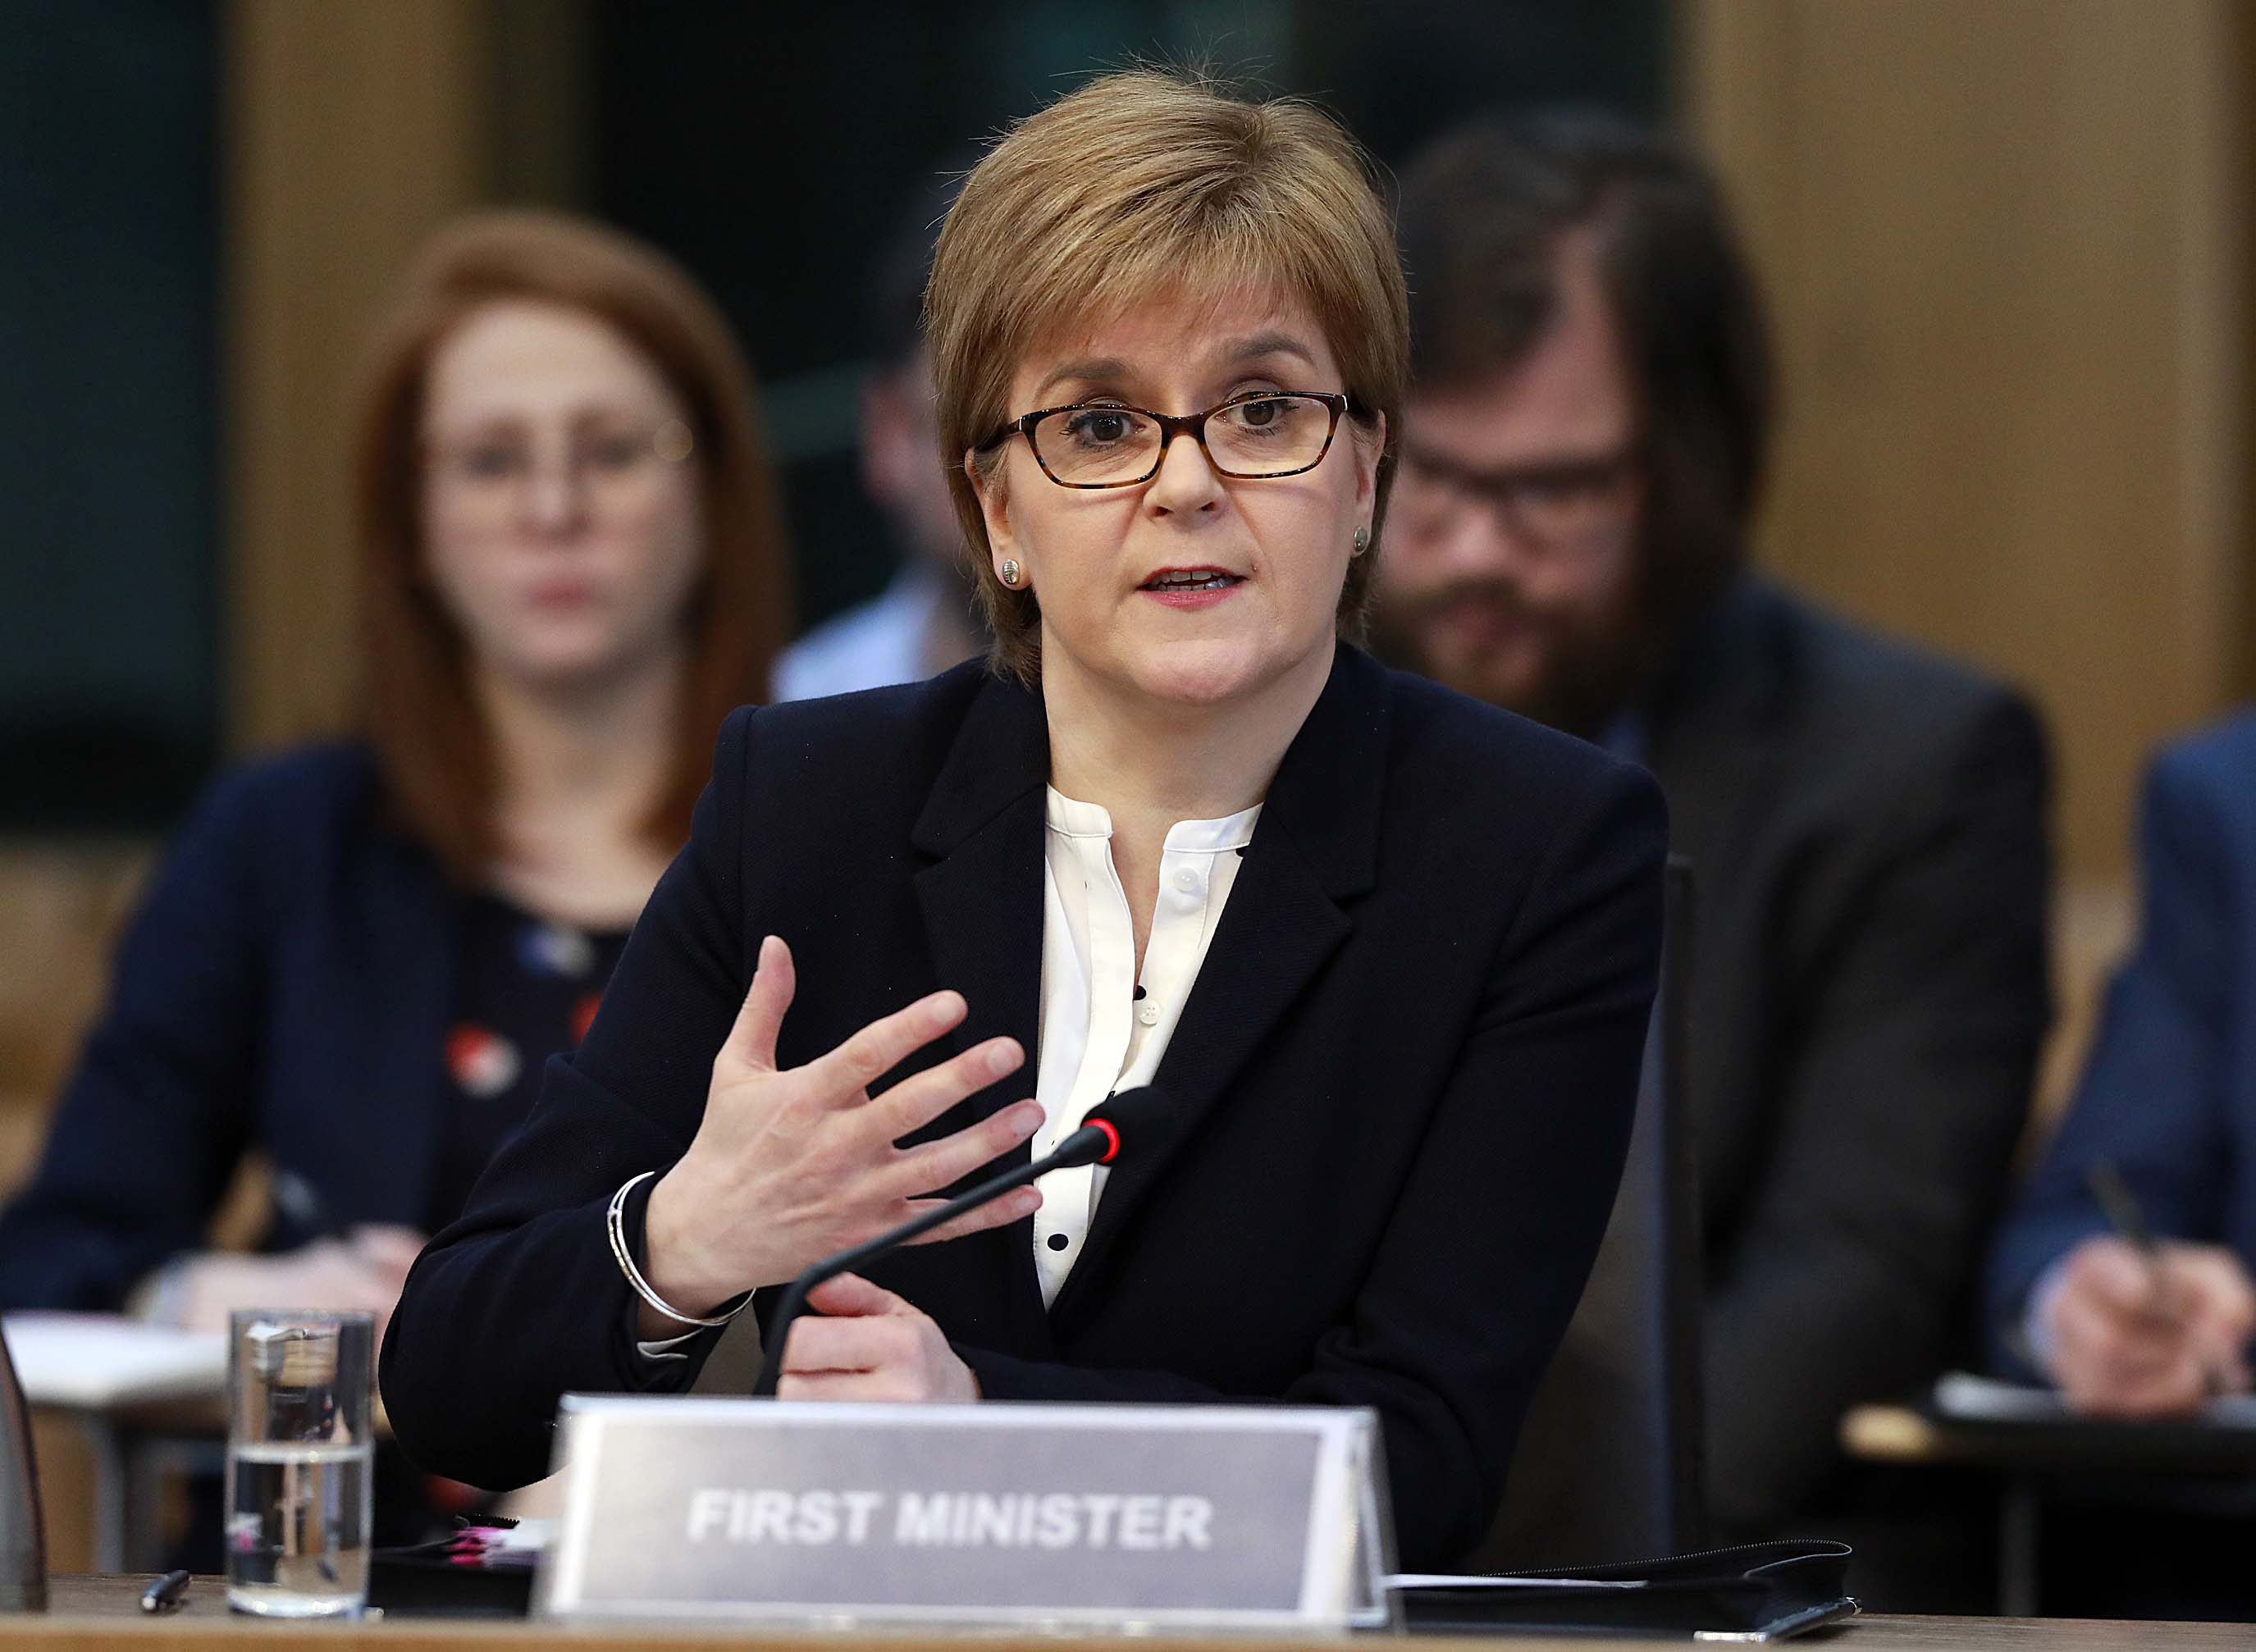 First Minister Nicola Sturgeon (Andrew Cowan/Scottish Parliament/PA Wire)